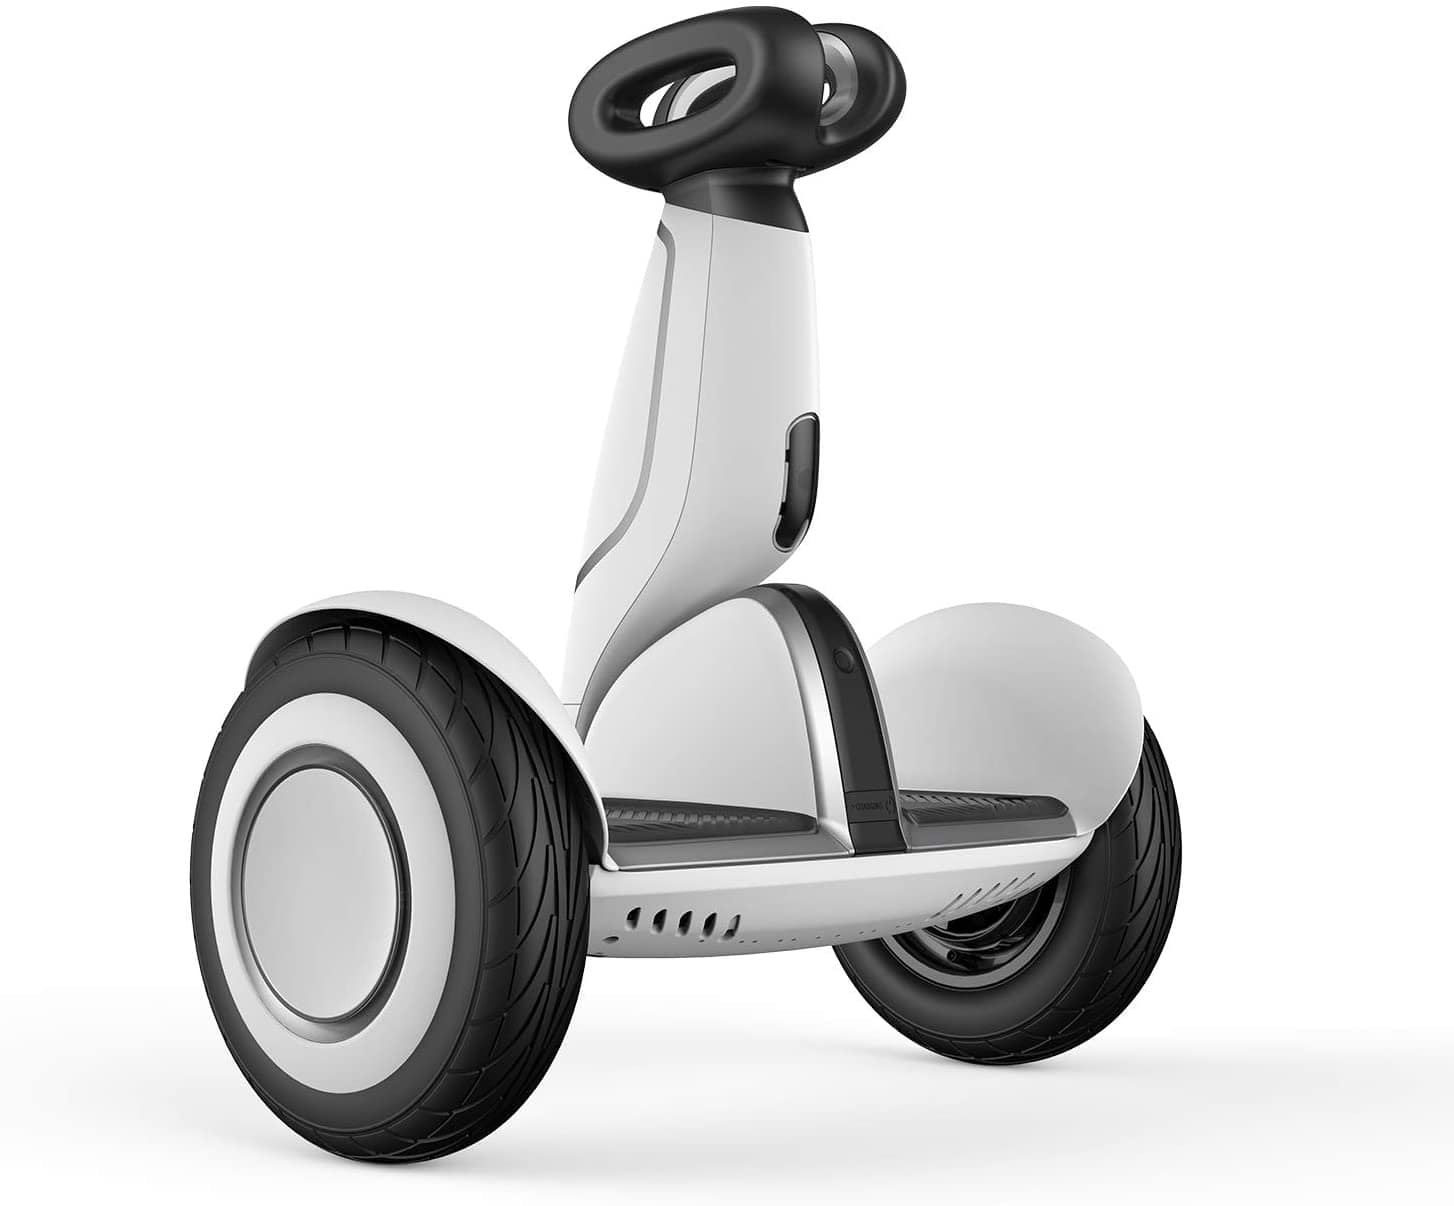 Segway Ninebot S-Plus Smart Self-Balancing Electric Scooter with Intelligent Lighting and Battery System, Remote Control and Auto-Following Mode, White $599.99